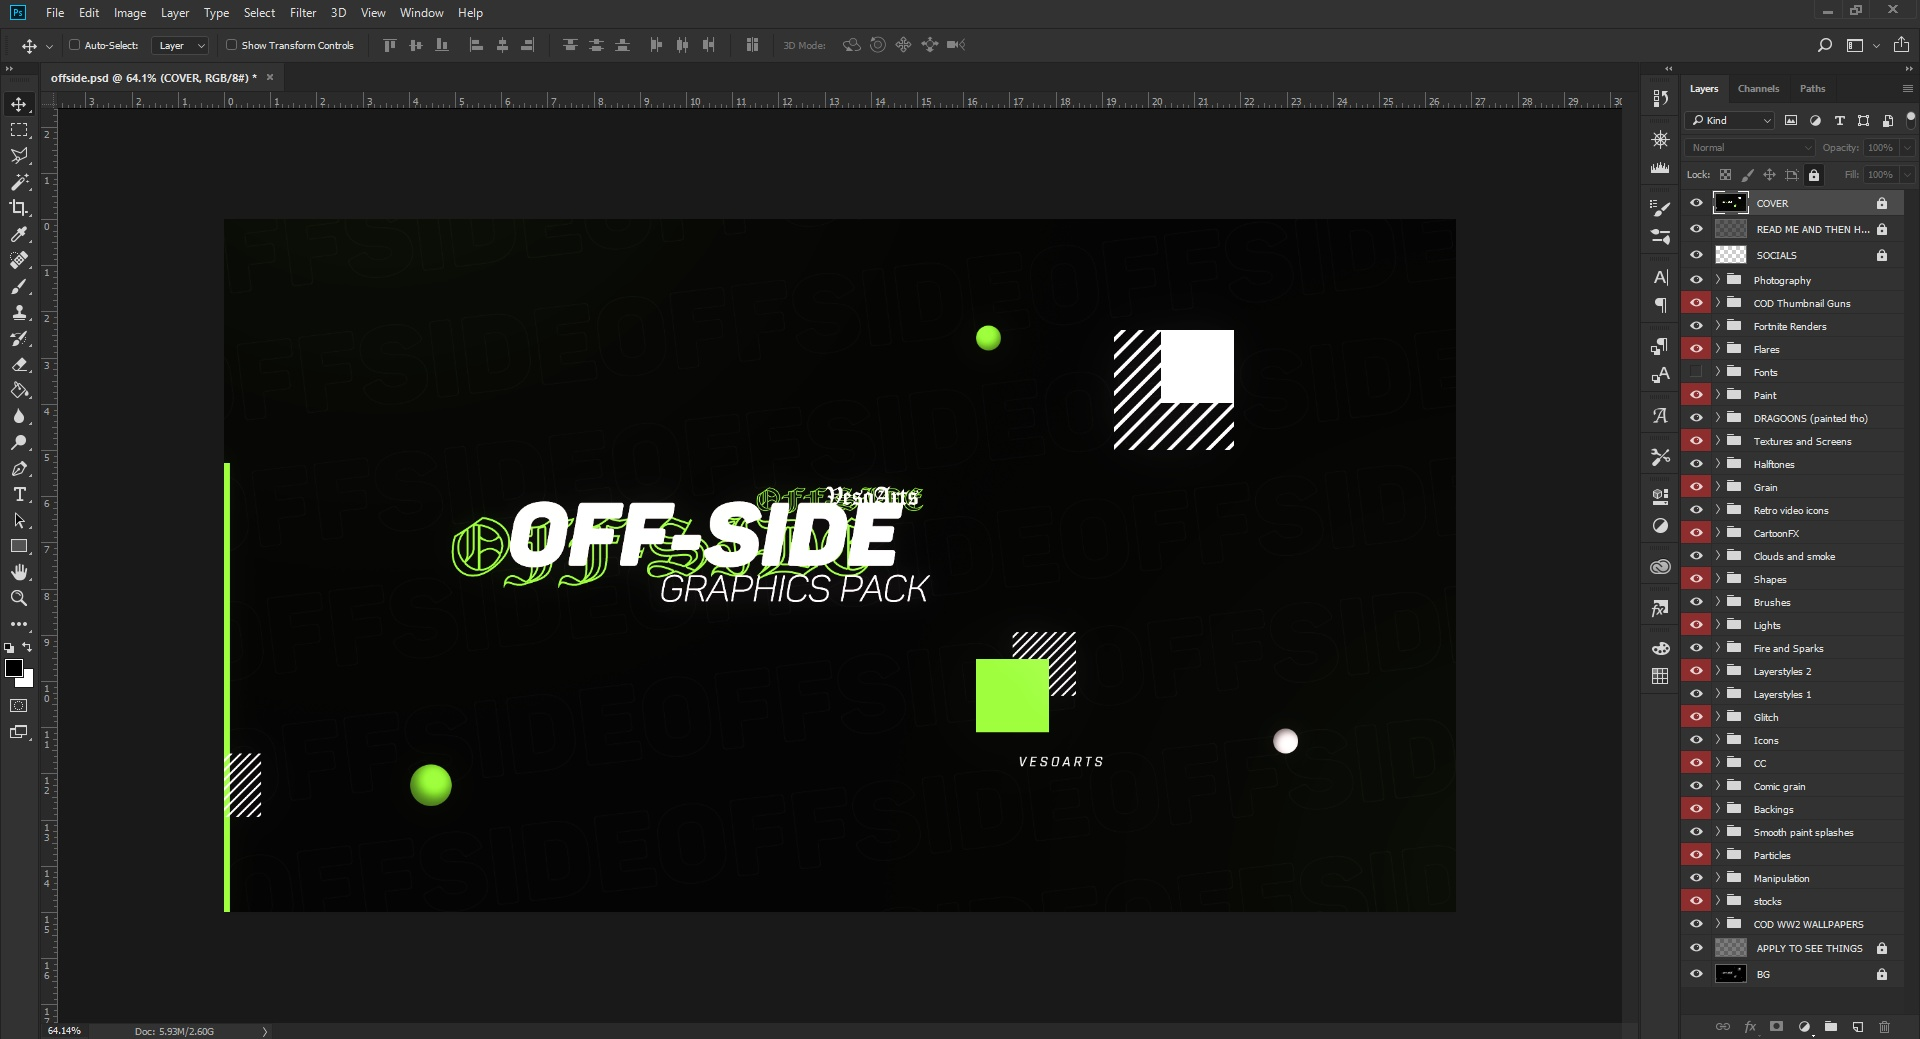 [INSANE] OFF-SIDE GRAPHICS PACK